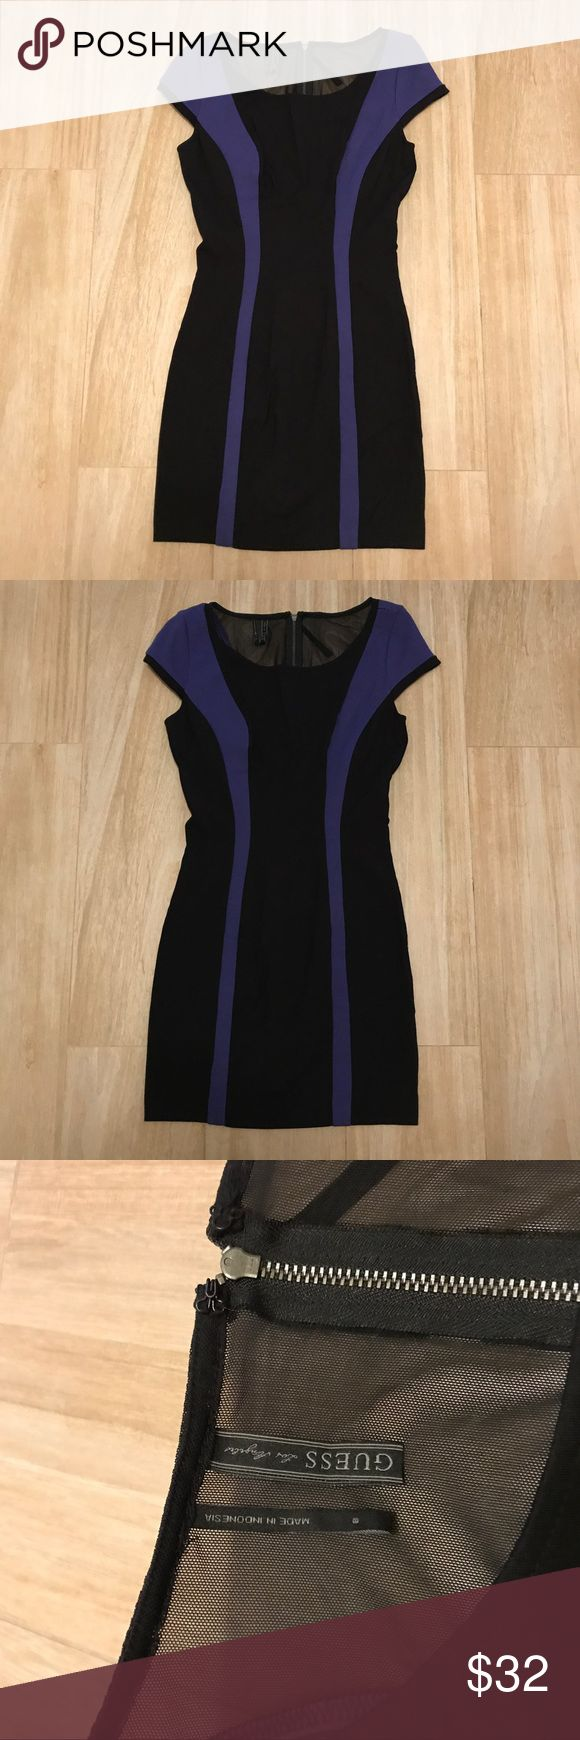 Guess Bodycon Dress Amazing black and royal blue, bodycon style Guess dress! Perfect dress for a night out! Dress features cap sleeves, flattering/slimming royal blue vertical striping, mesh panel that runs halfway down the back of the dress. Material is thick, but has lots of stretch to really show off your shape (while hiding imperfections!). Size 8, but would best be suited for a size 6 or even a large 4. Worn twice, and in great condition! Originally purchased for $98. Guess Dresses